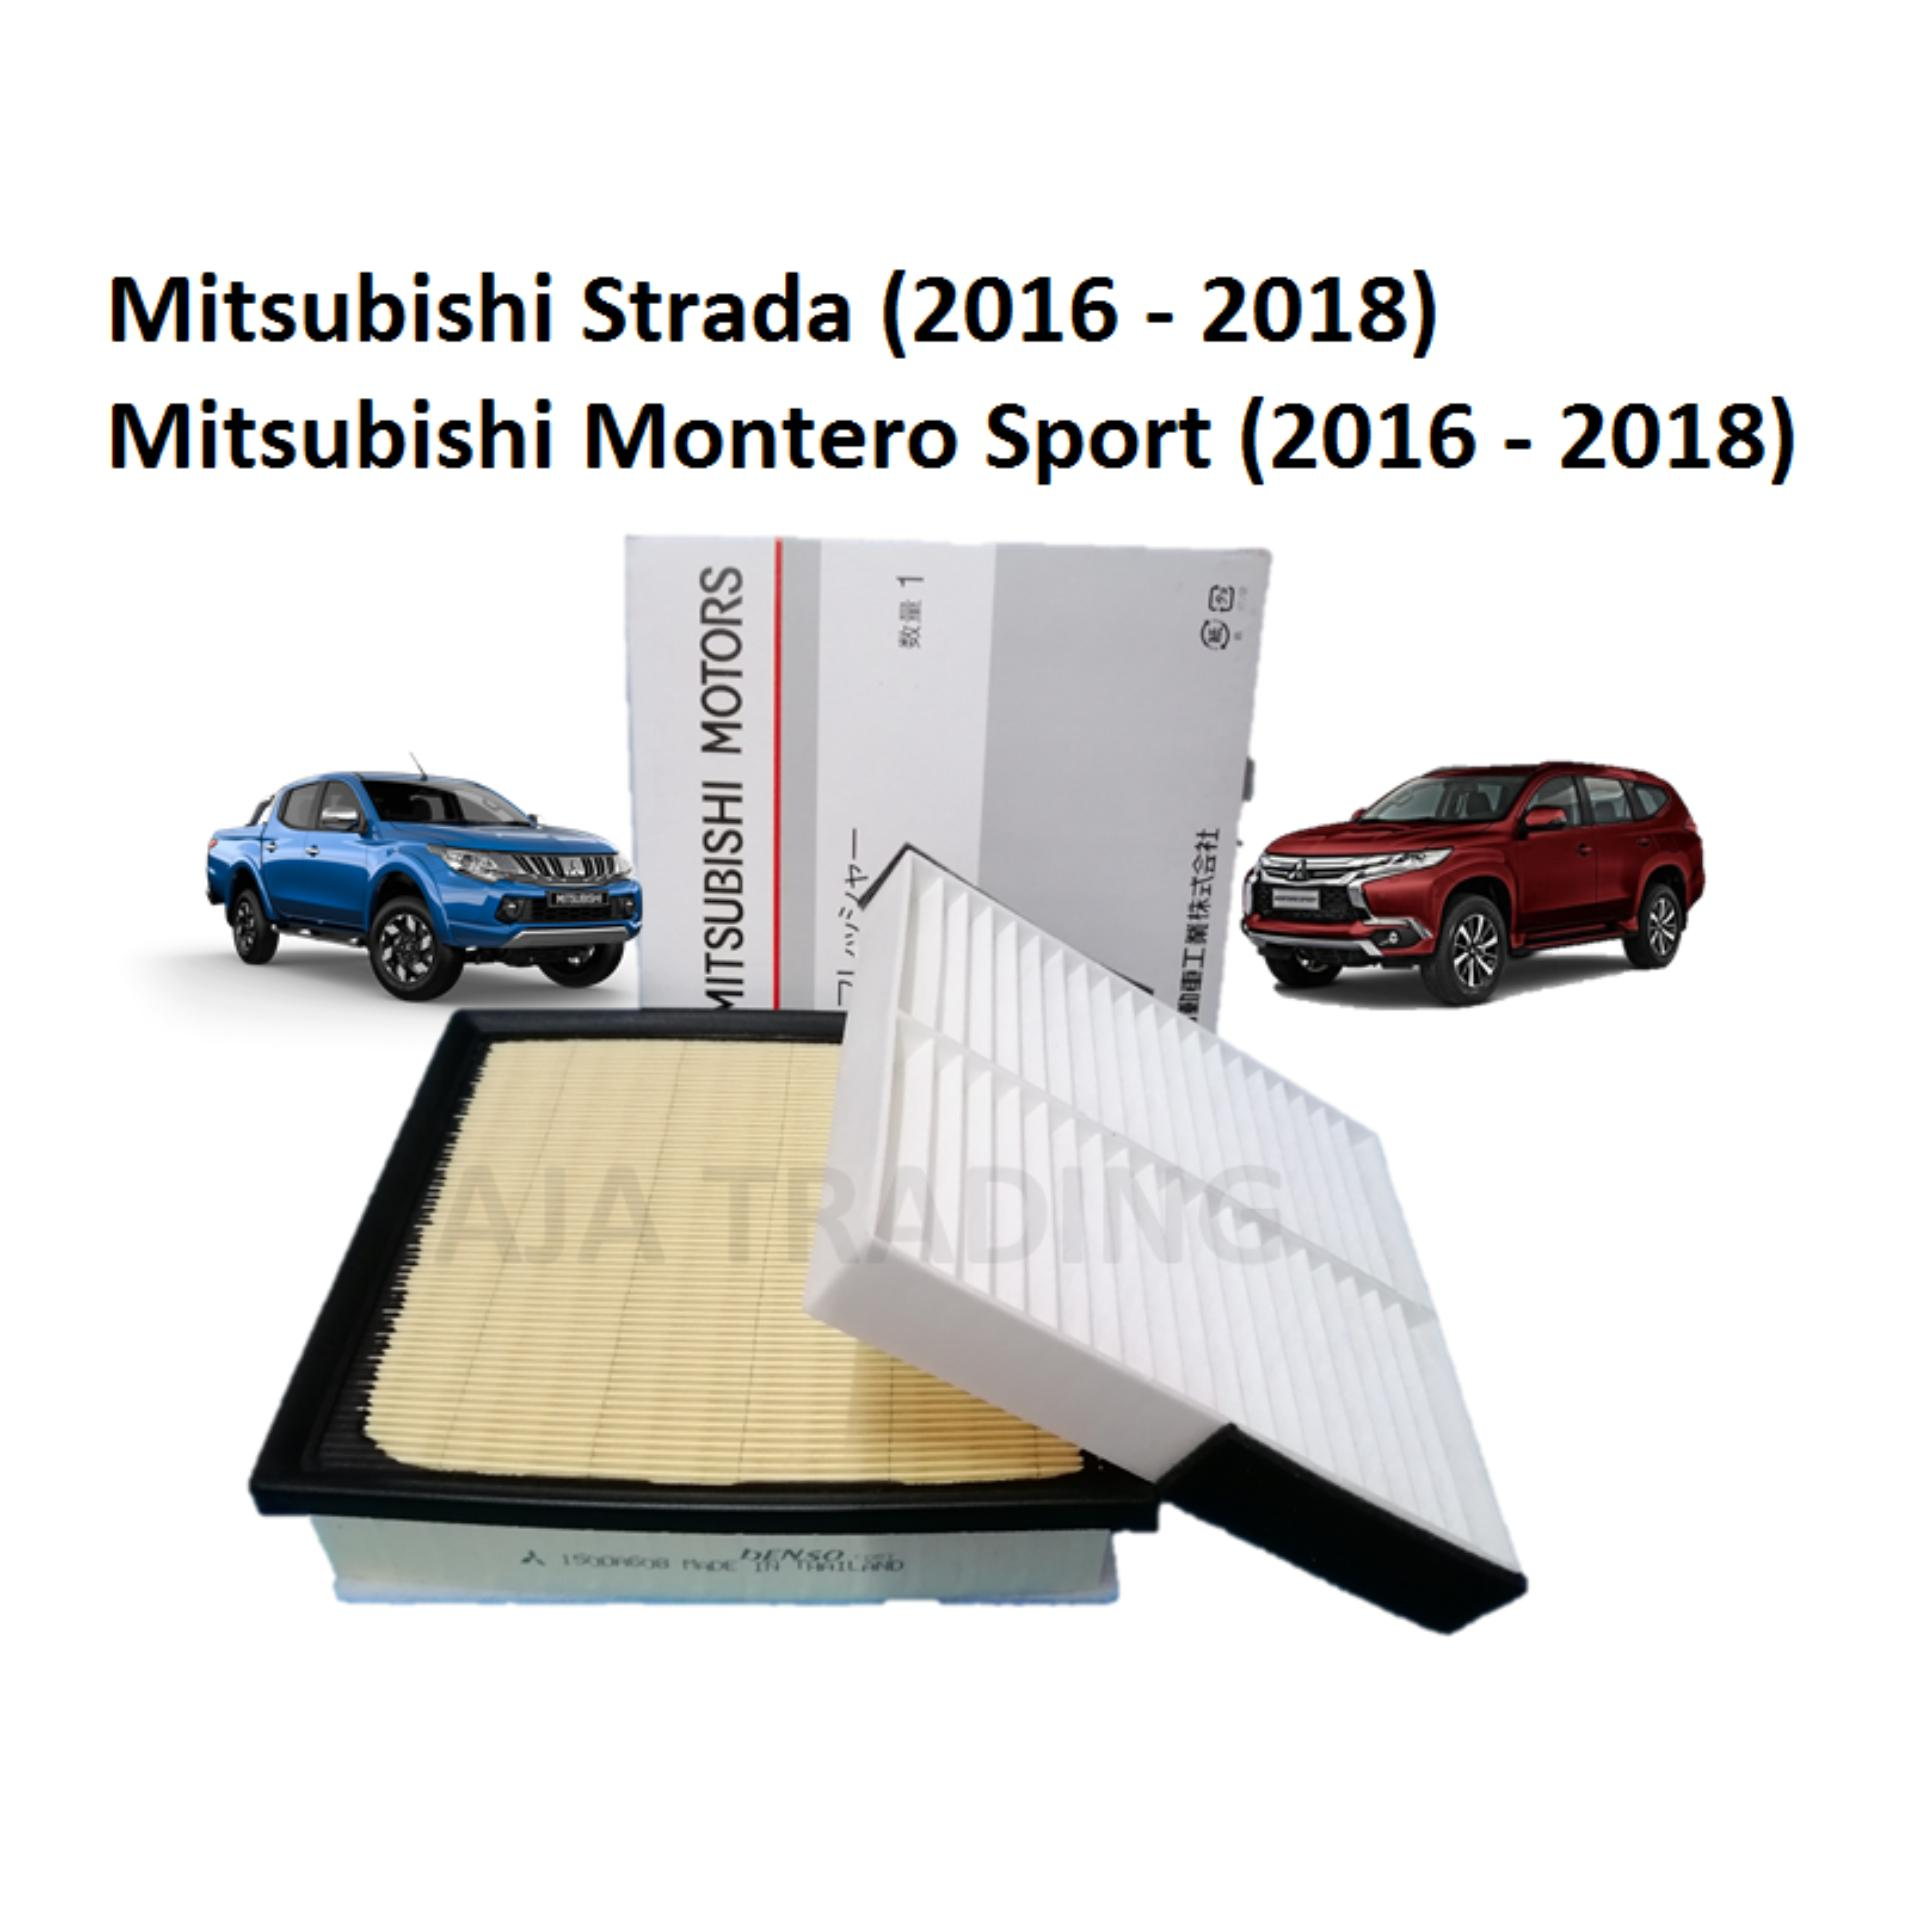 Air Filter Car For Sale Engine Online Brands Prices 1999 Mustang Fuel Rep Combo And Cabin Mitsubishi Strada 3rd Gen Montero Sport Diesel 2016